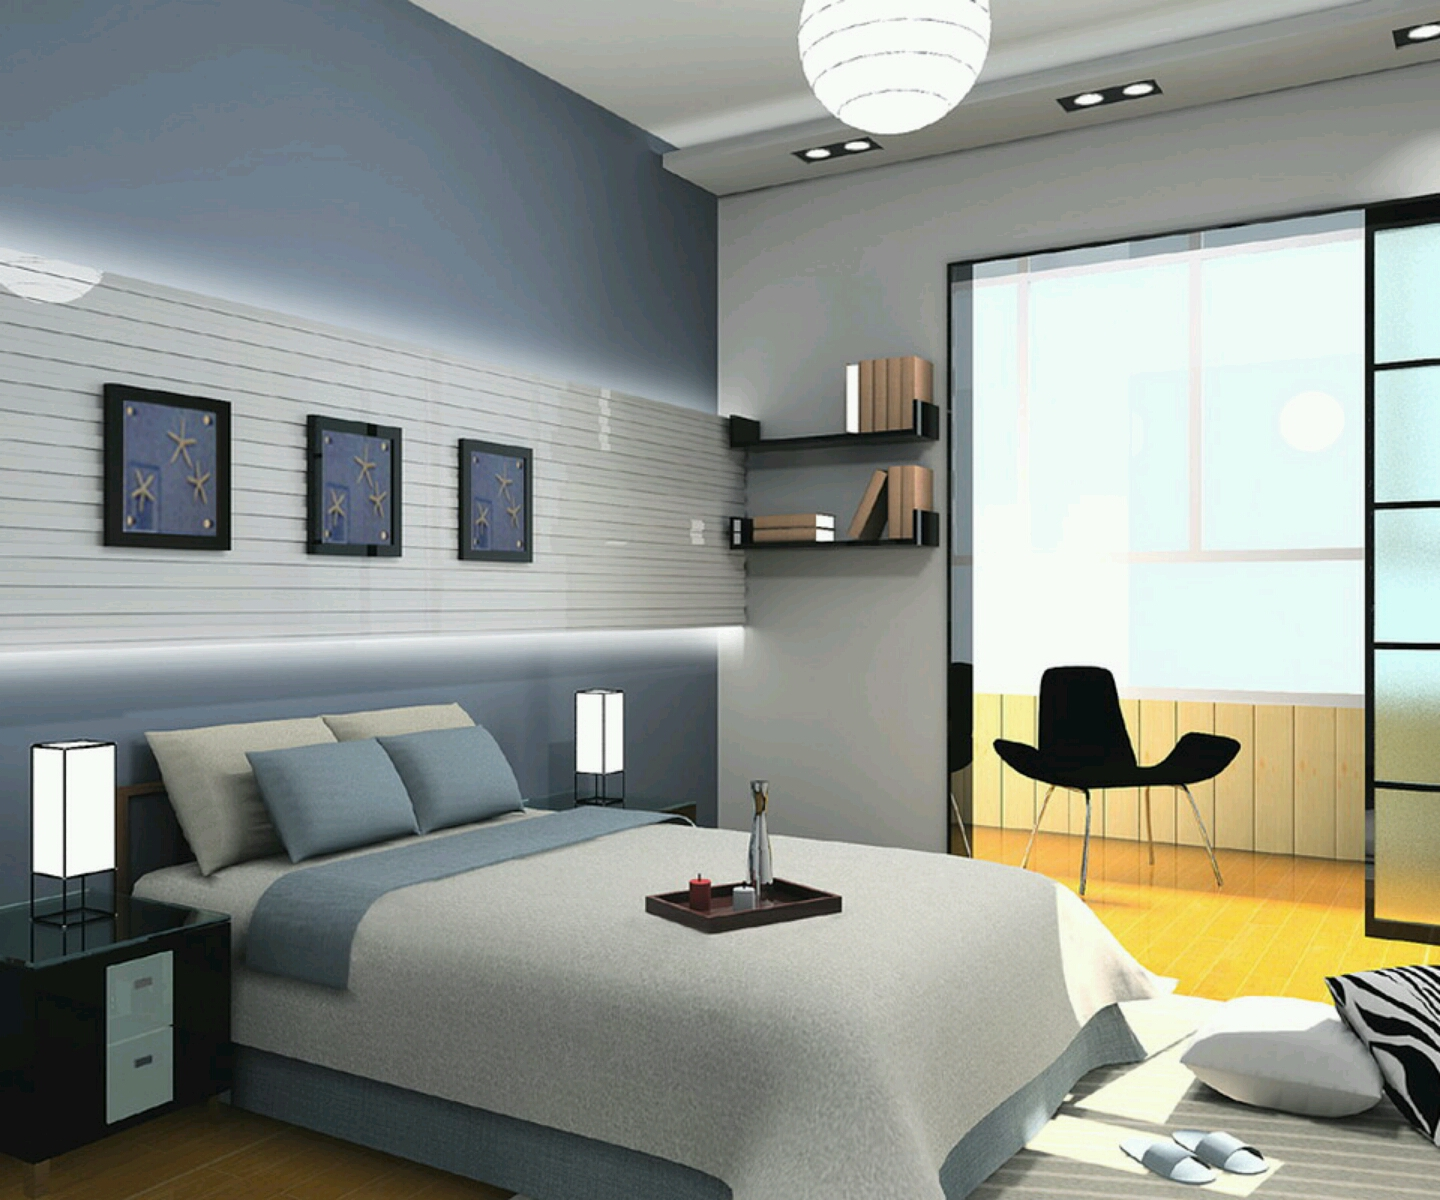 Best Layout For Small Bedroom Best Bedroom Ideas Size Layout